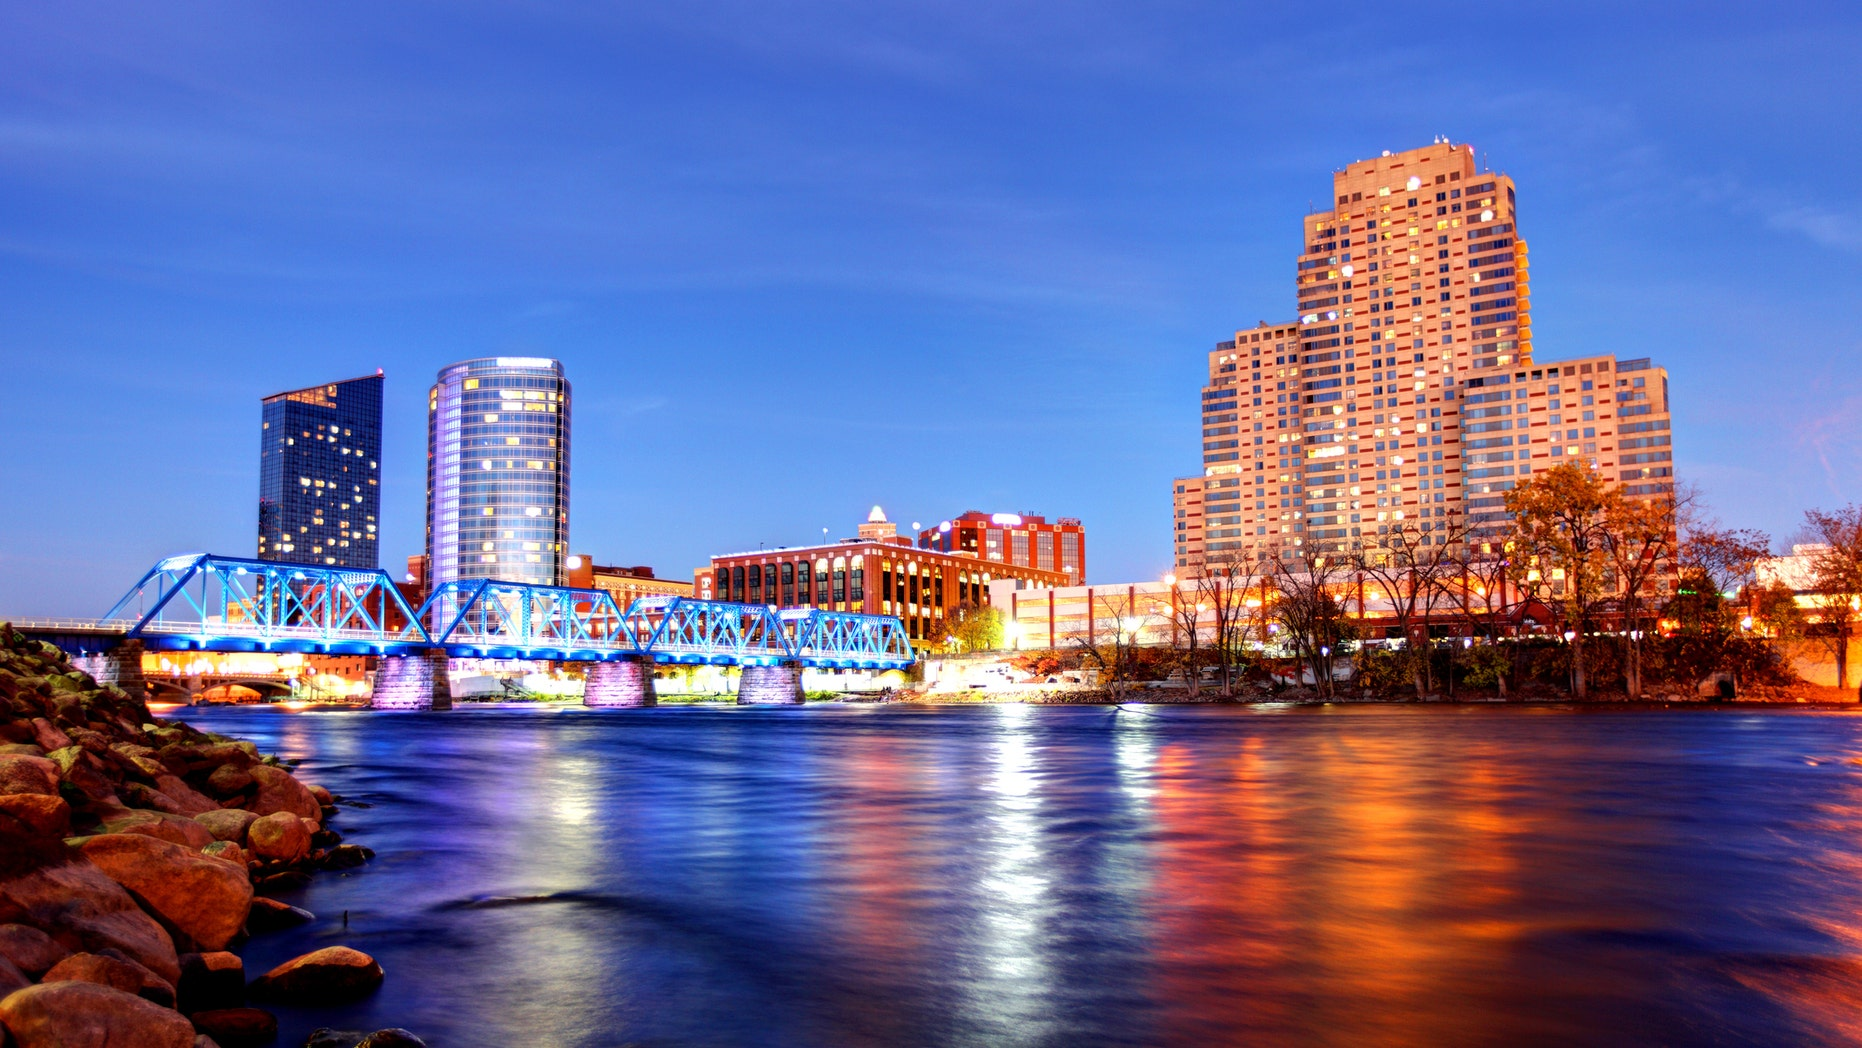 Cities such as Grand Rapids, Mich., report strengthening economies and affordable housing.